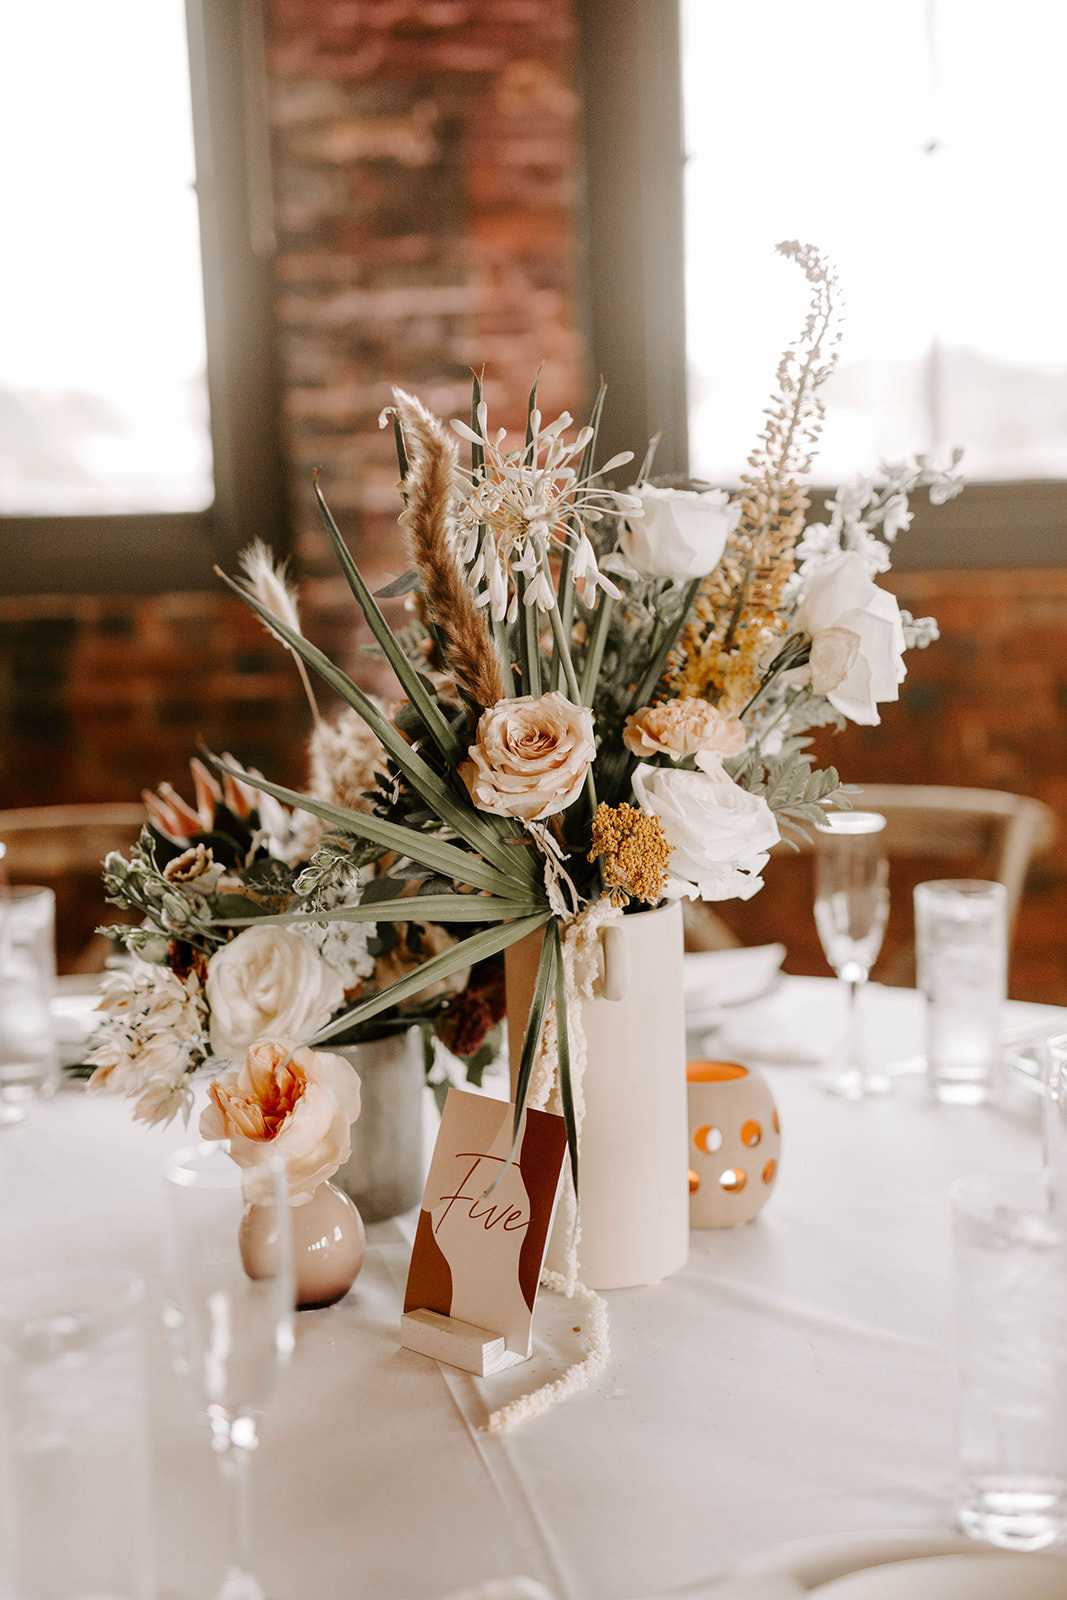 Boho Whimsical Wedding Reception Decor, Small White Vase with White and Blush Pink Roses, Palm Fronds Floral Centerpiece   Tampa Bay Wedding Planner Coastal Coordinating